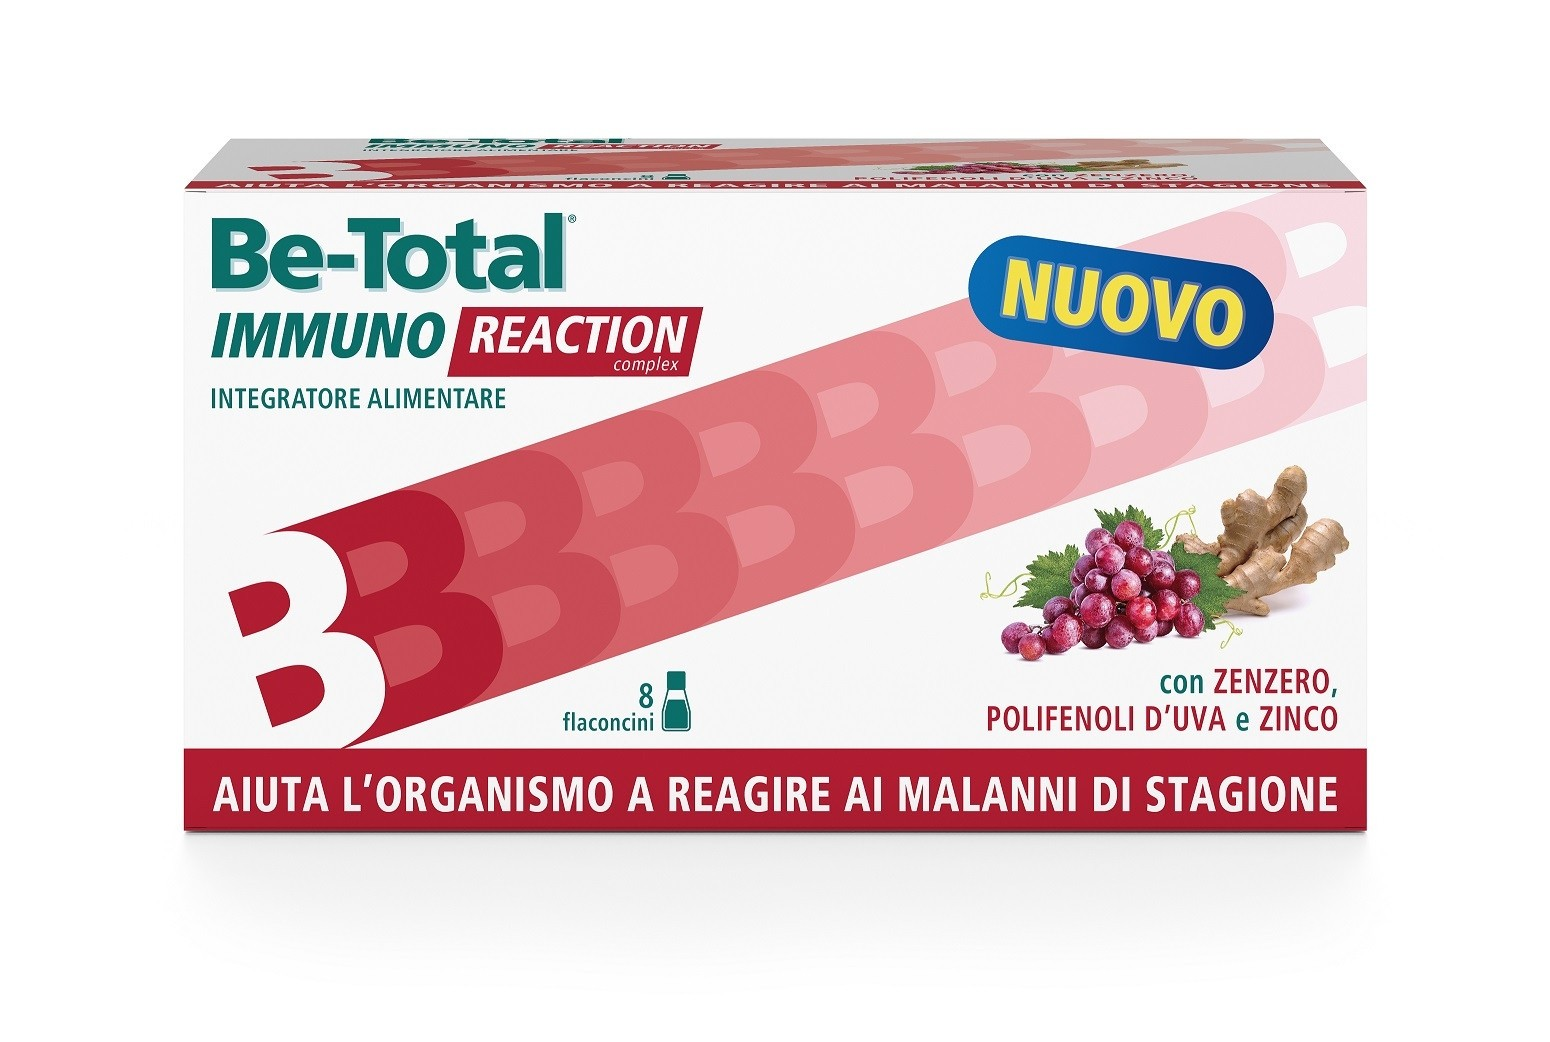 Be-Total Immuno Reaction Complex integratore alimentare 8 flaconcini